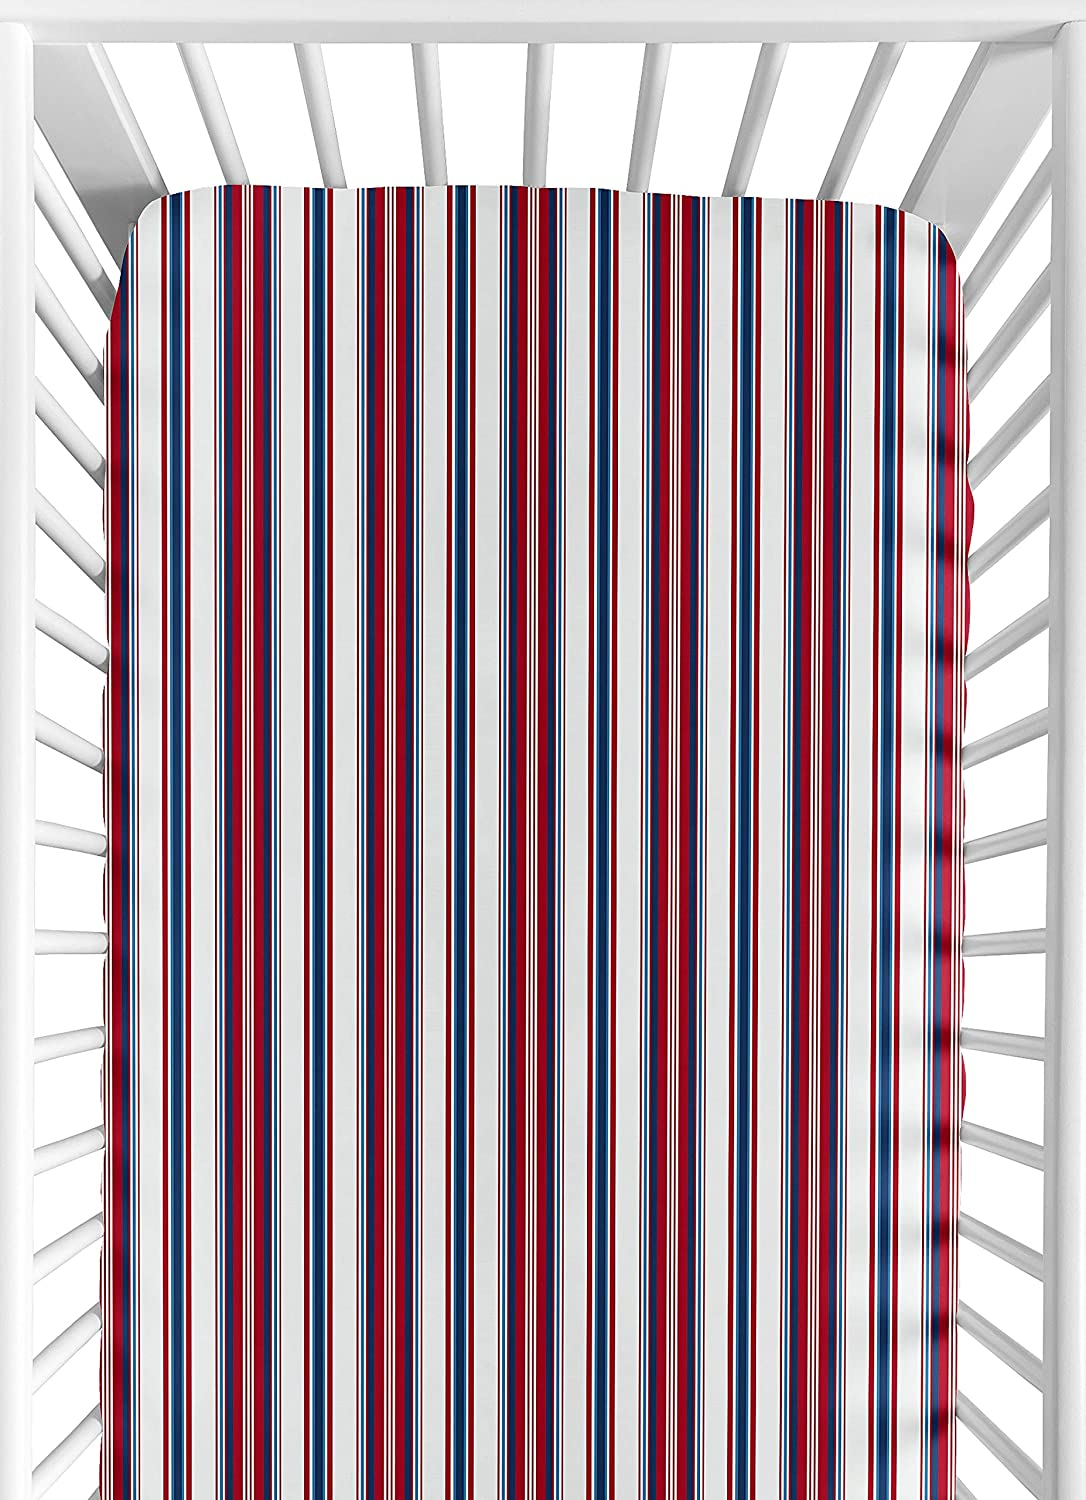 Sweet Jojo Designs Red, White and Blue Striped Baby or Toddler Fitted Crib Sheet for Baseball Patch Sports Collection